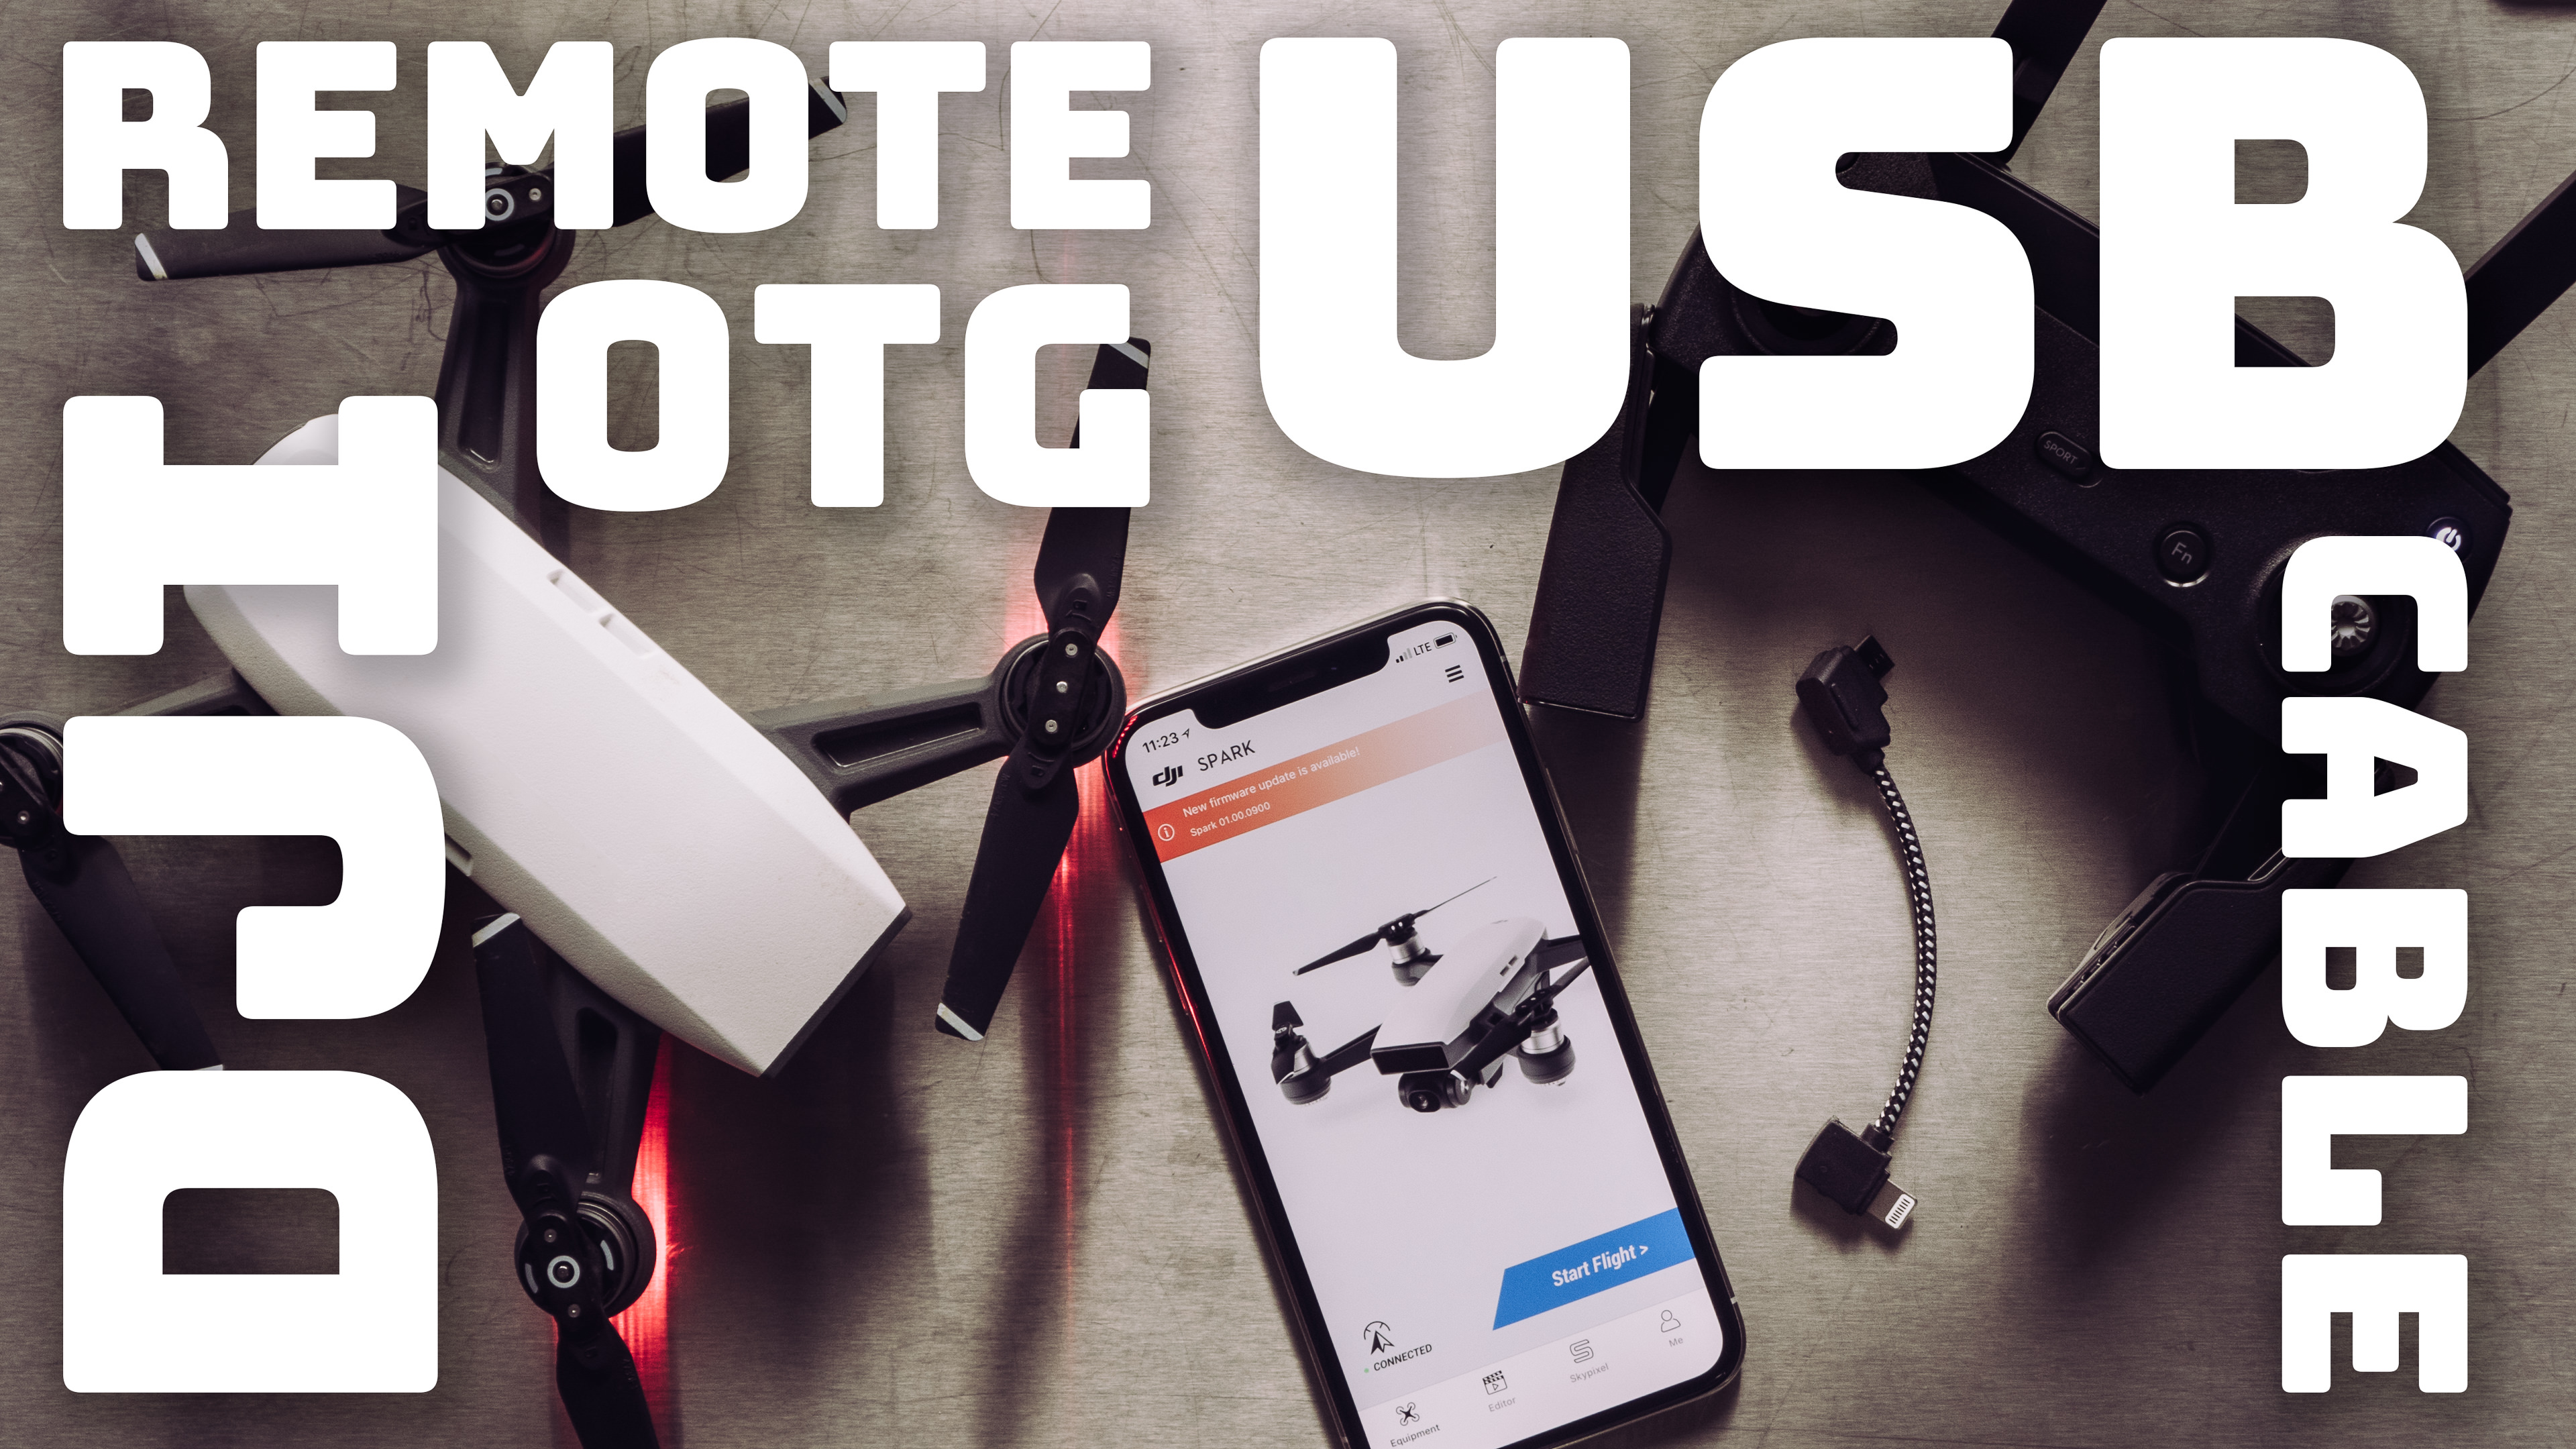 Dji Spark Remote Controller Otg Usb Cable Pinout Information Is Available Here